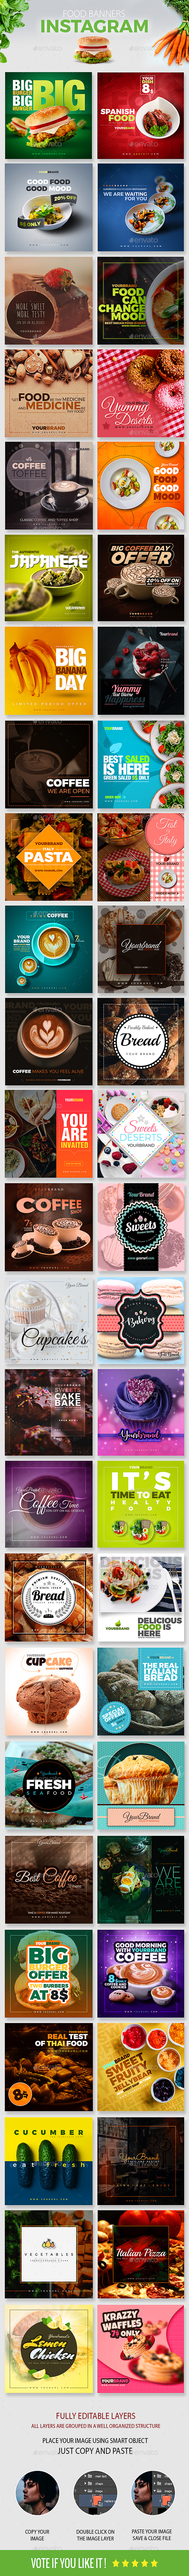 50 Food Instagram Banners - Social Media Web Elements